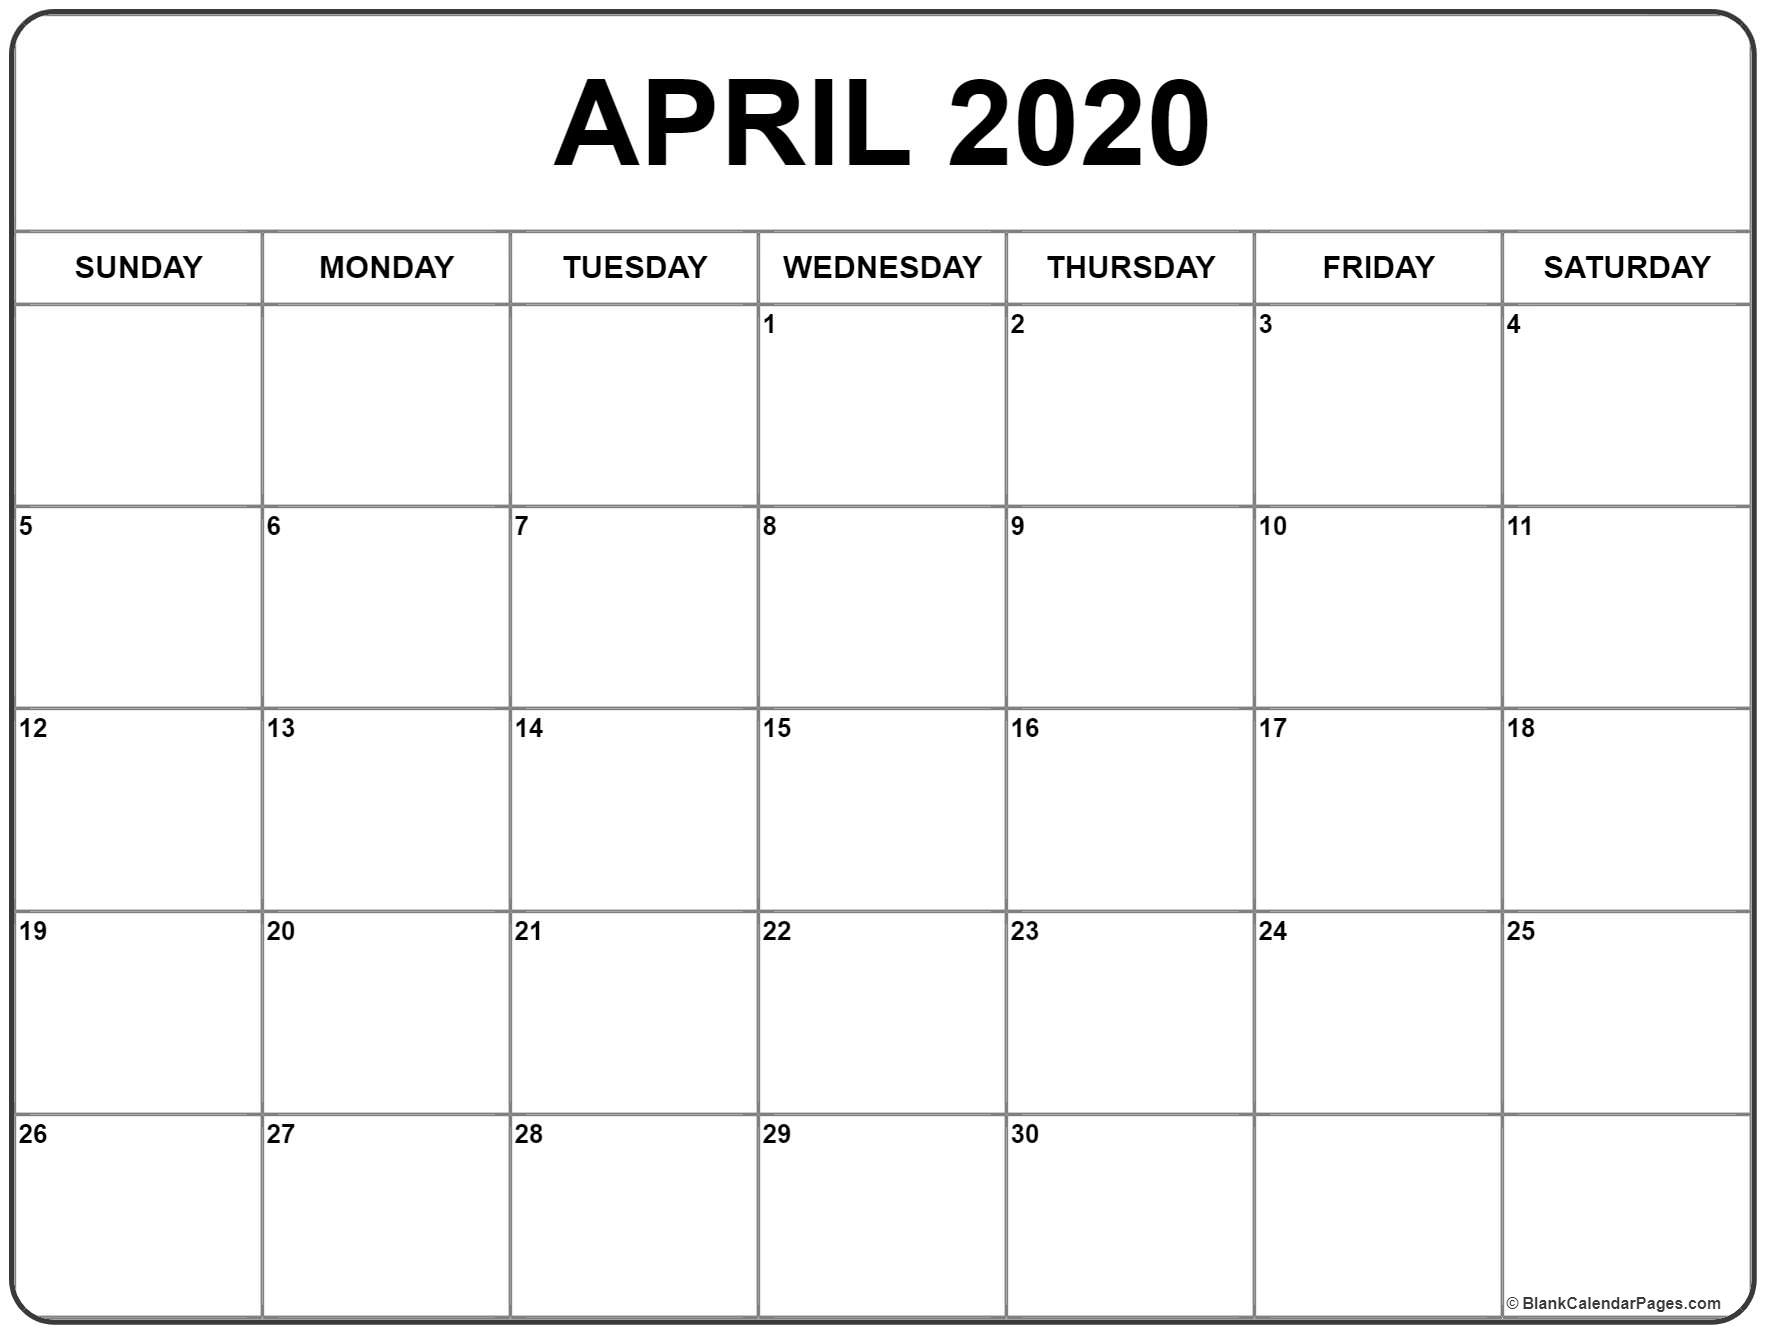 April 2020 Calendar | Free Printable Monthly Calendars_Blank Calendar Of April 2020